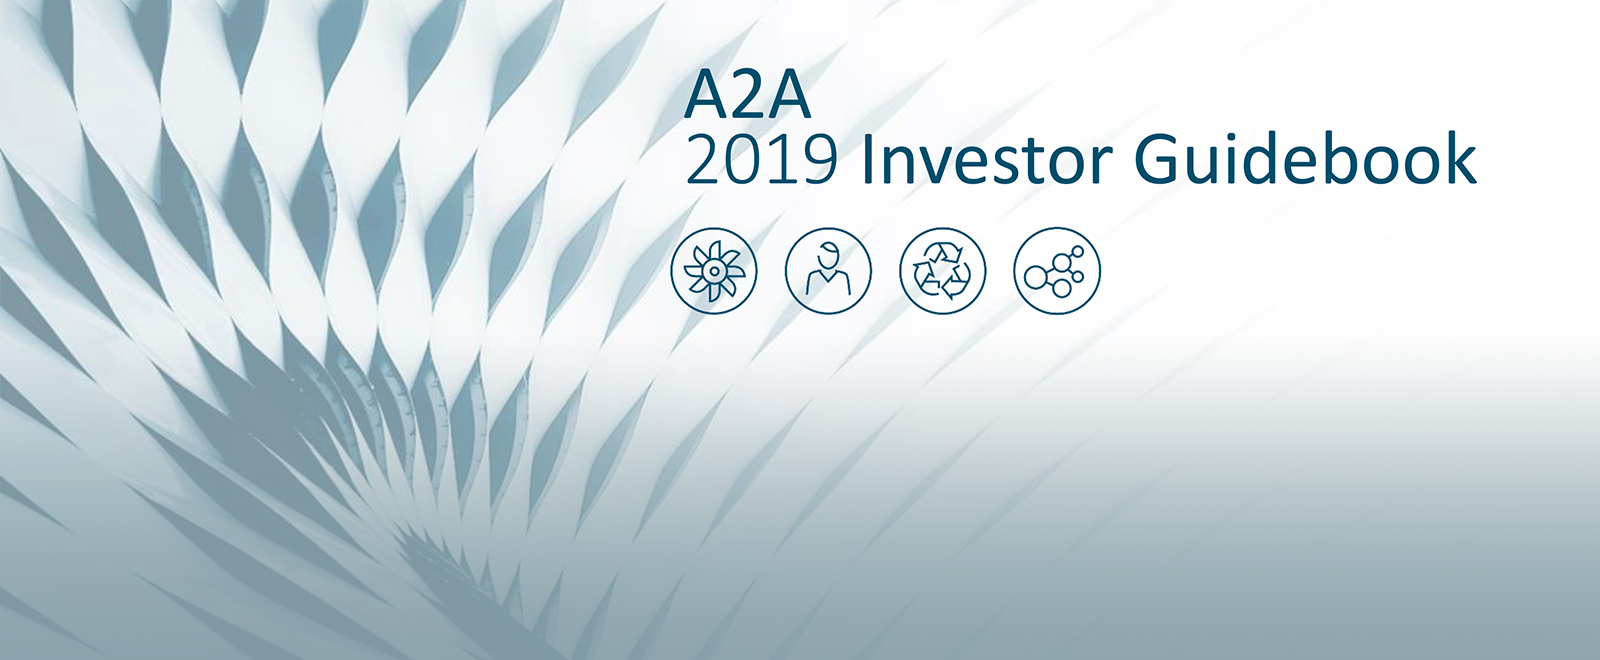 A2A 2019 Investor Guidebook – Now on line